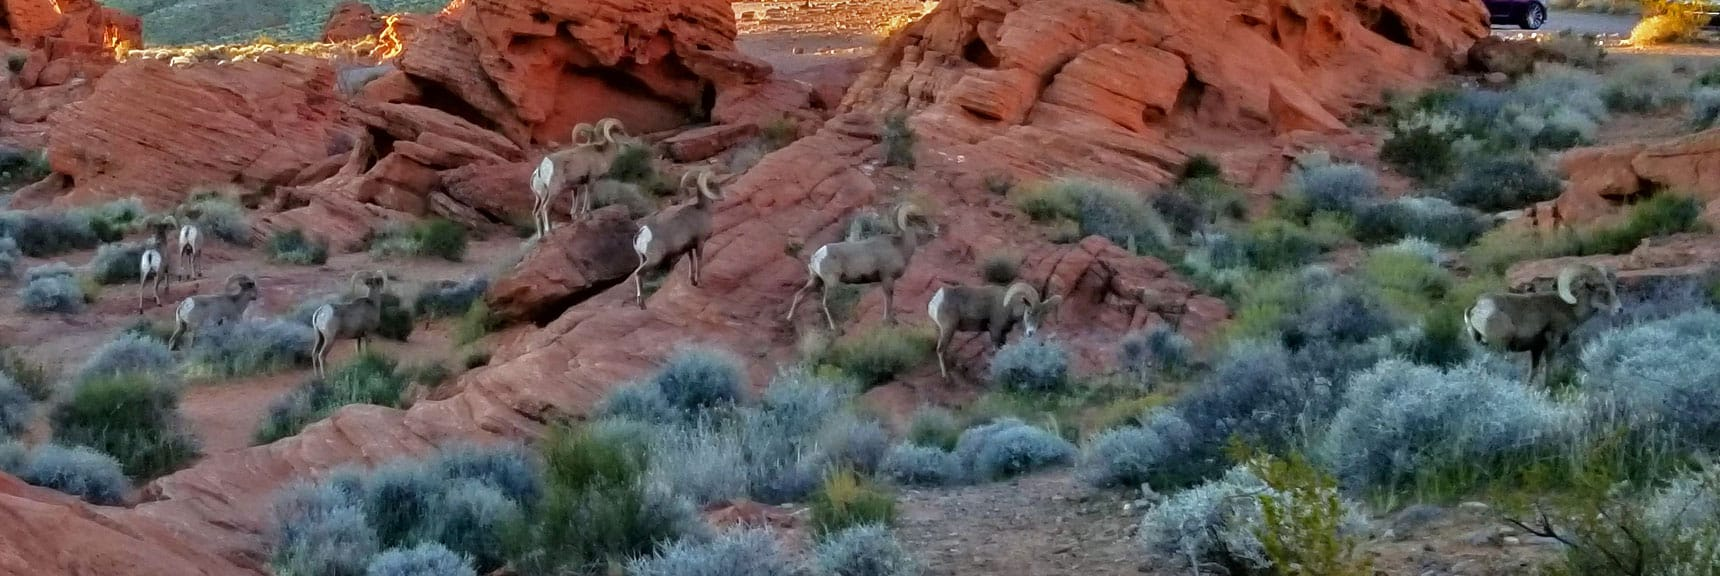 Bighorn Sheep at Beehives in Valley of Fire State Park, Nevada Slide 009